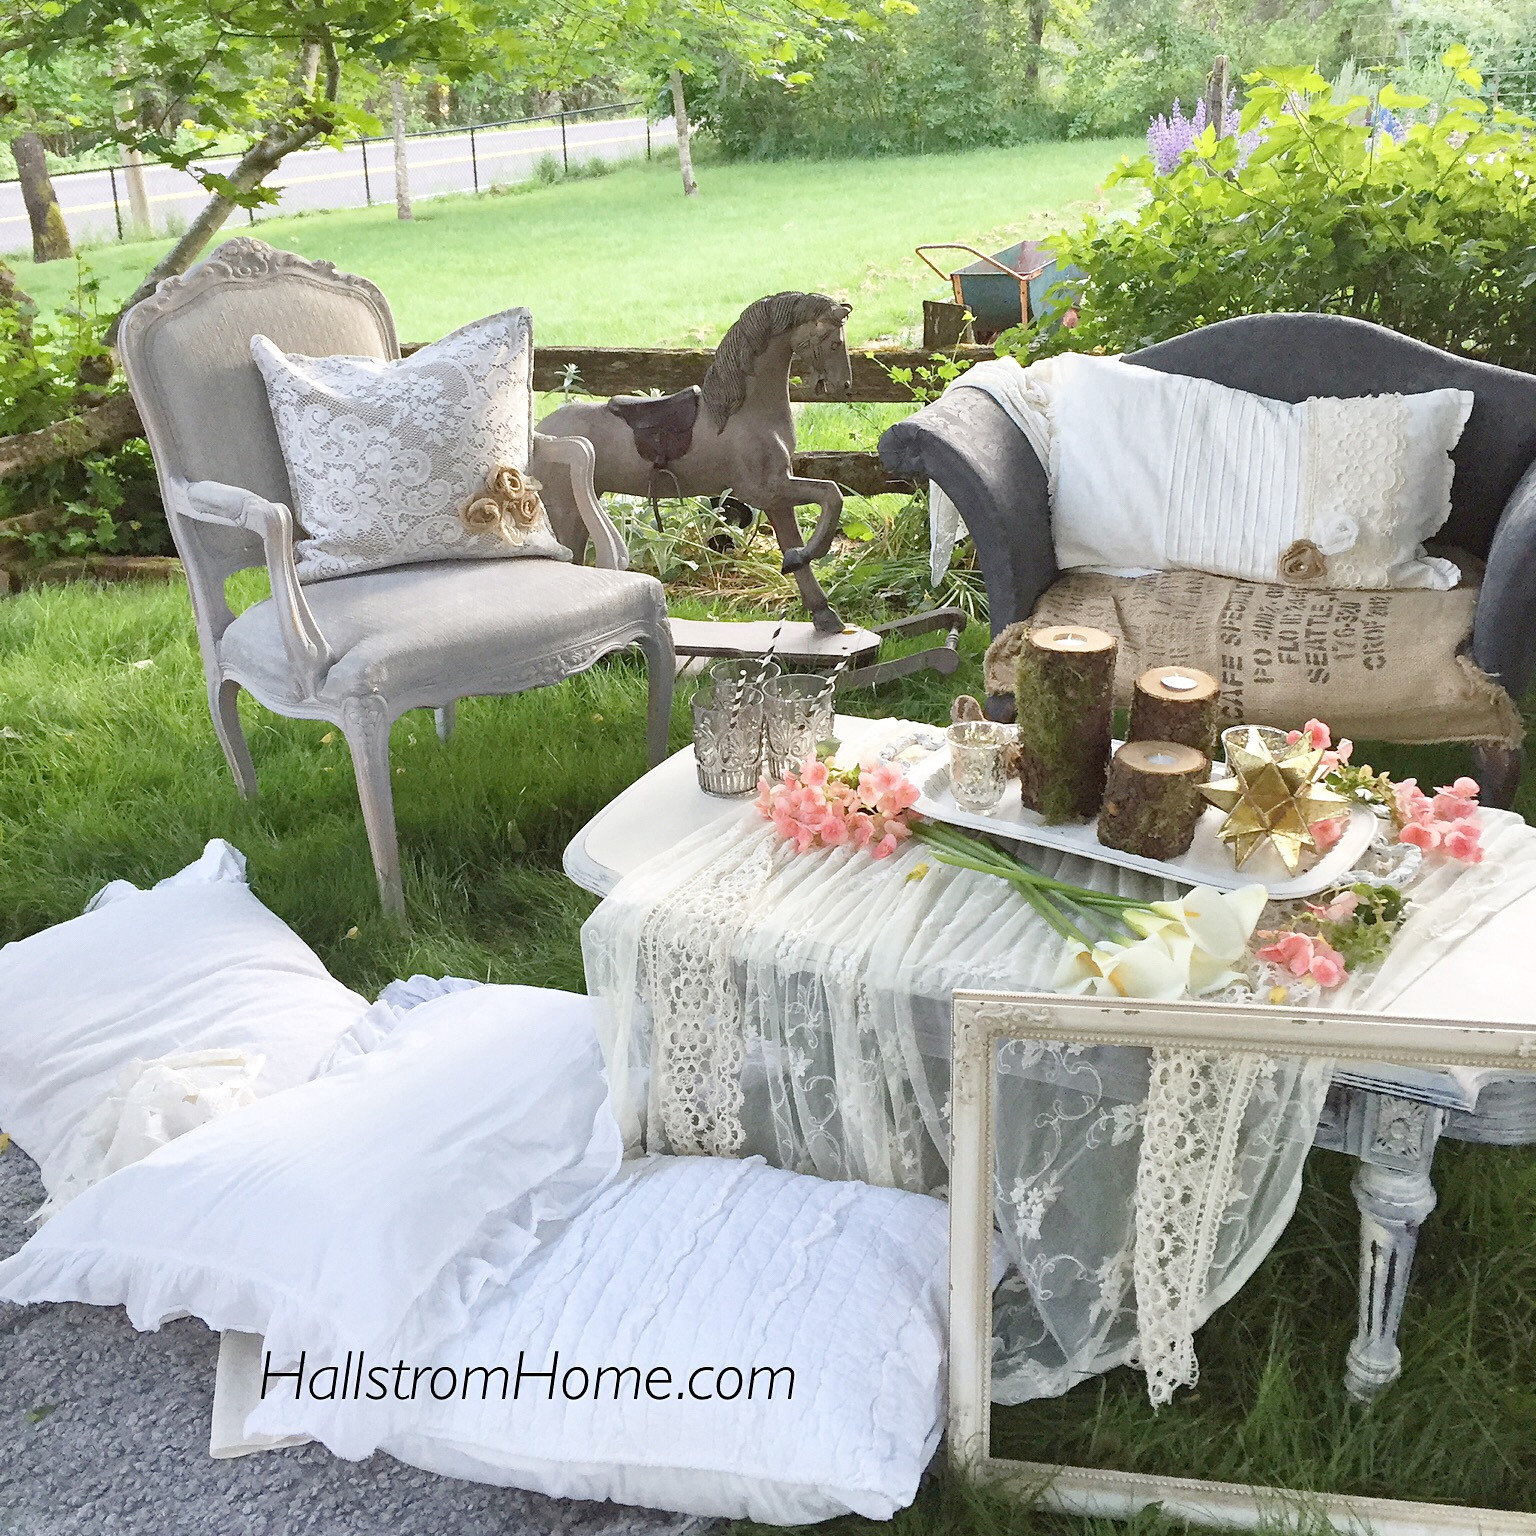 Hallstrom Home Bohemian Garden Party Decor